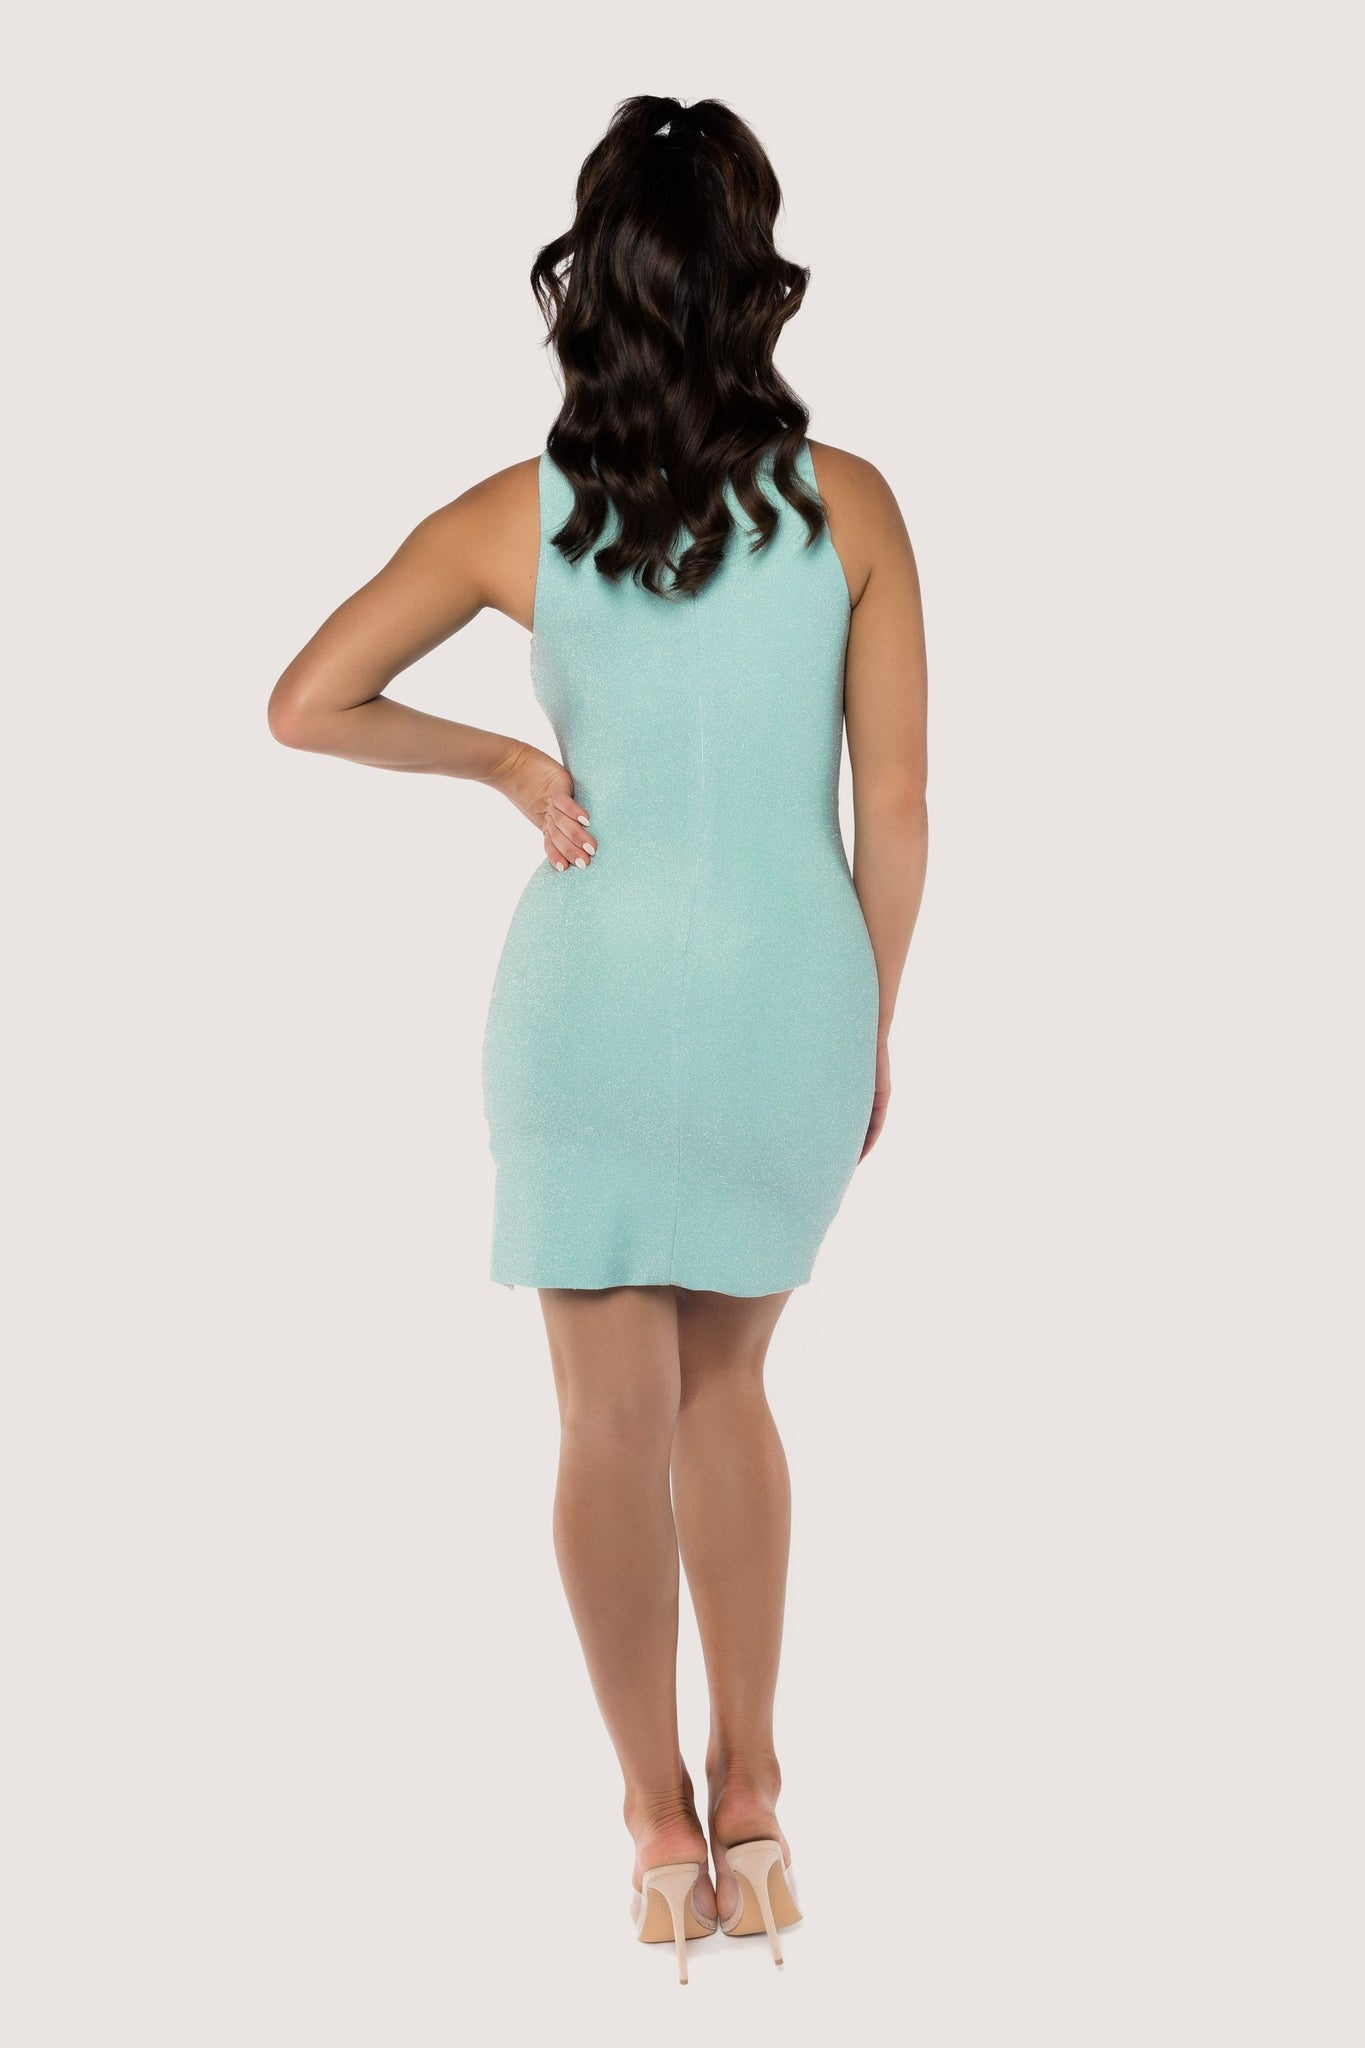 Amy Sleeveless Split Mini Dress - Turquoise - MESHKI